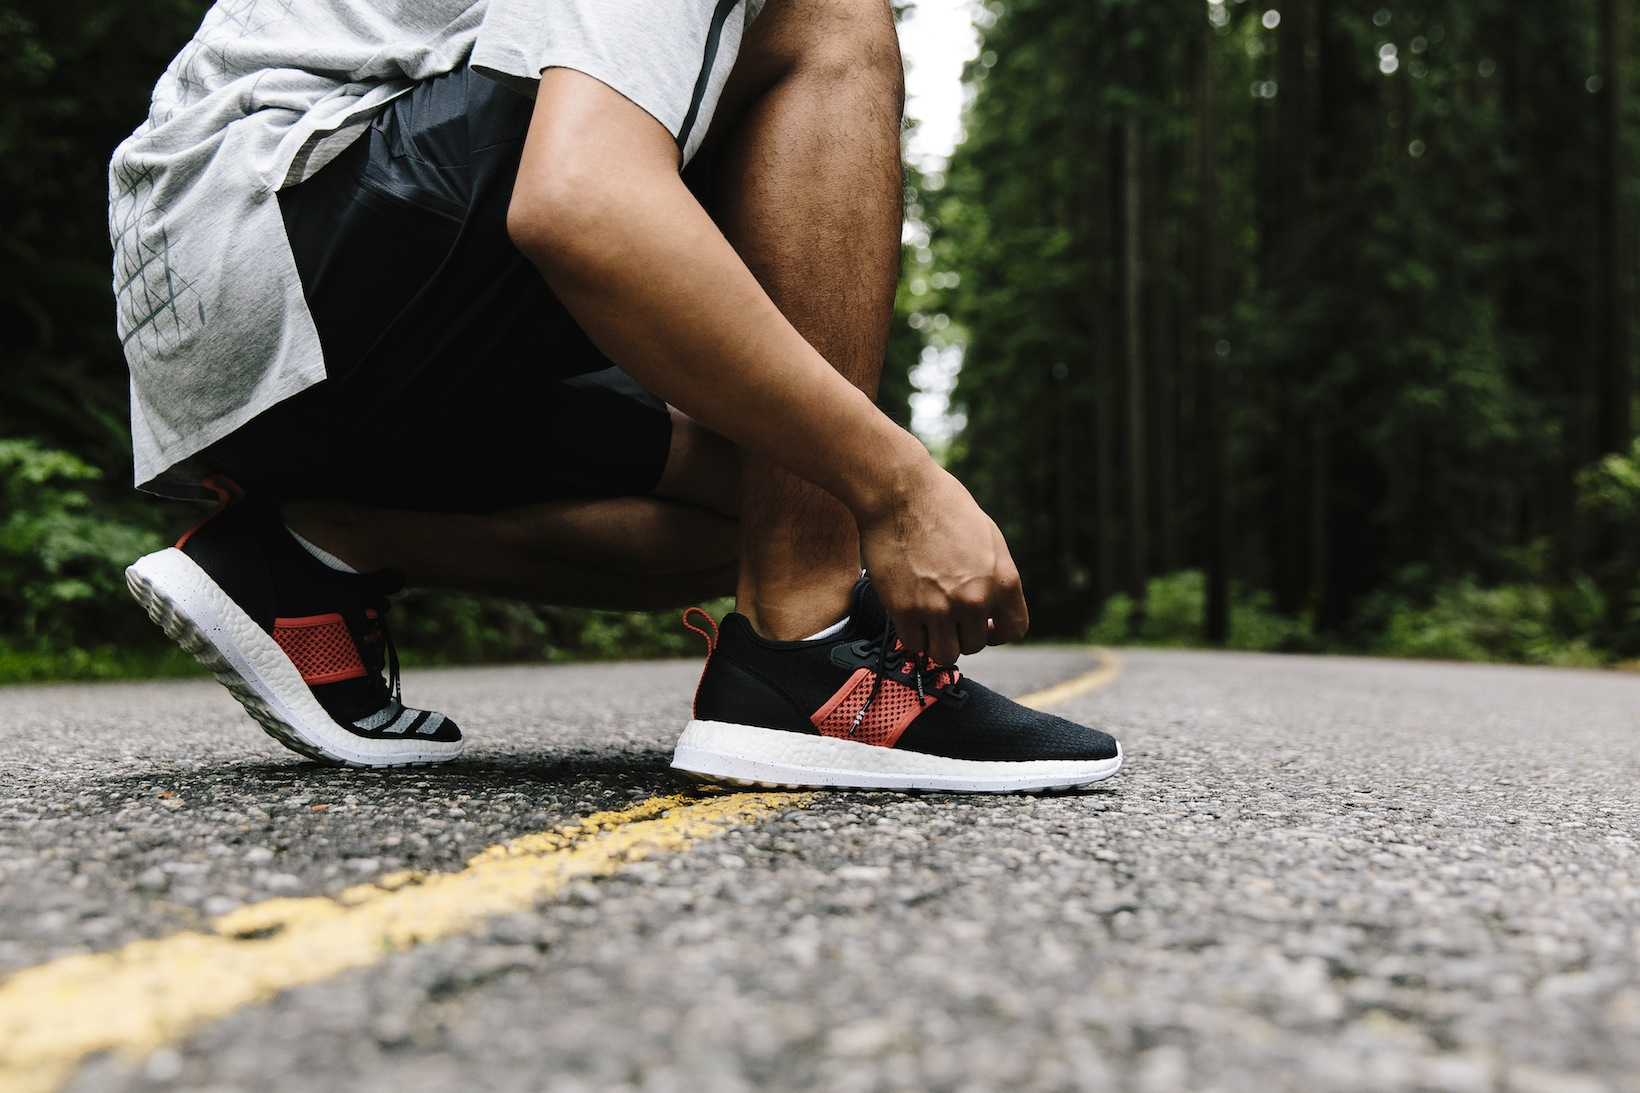 Livestock Joins Forces With adidas Consortium for the Samba and Pure BOOST ZG